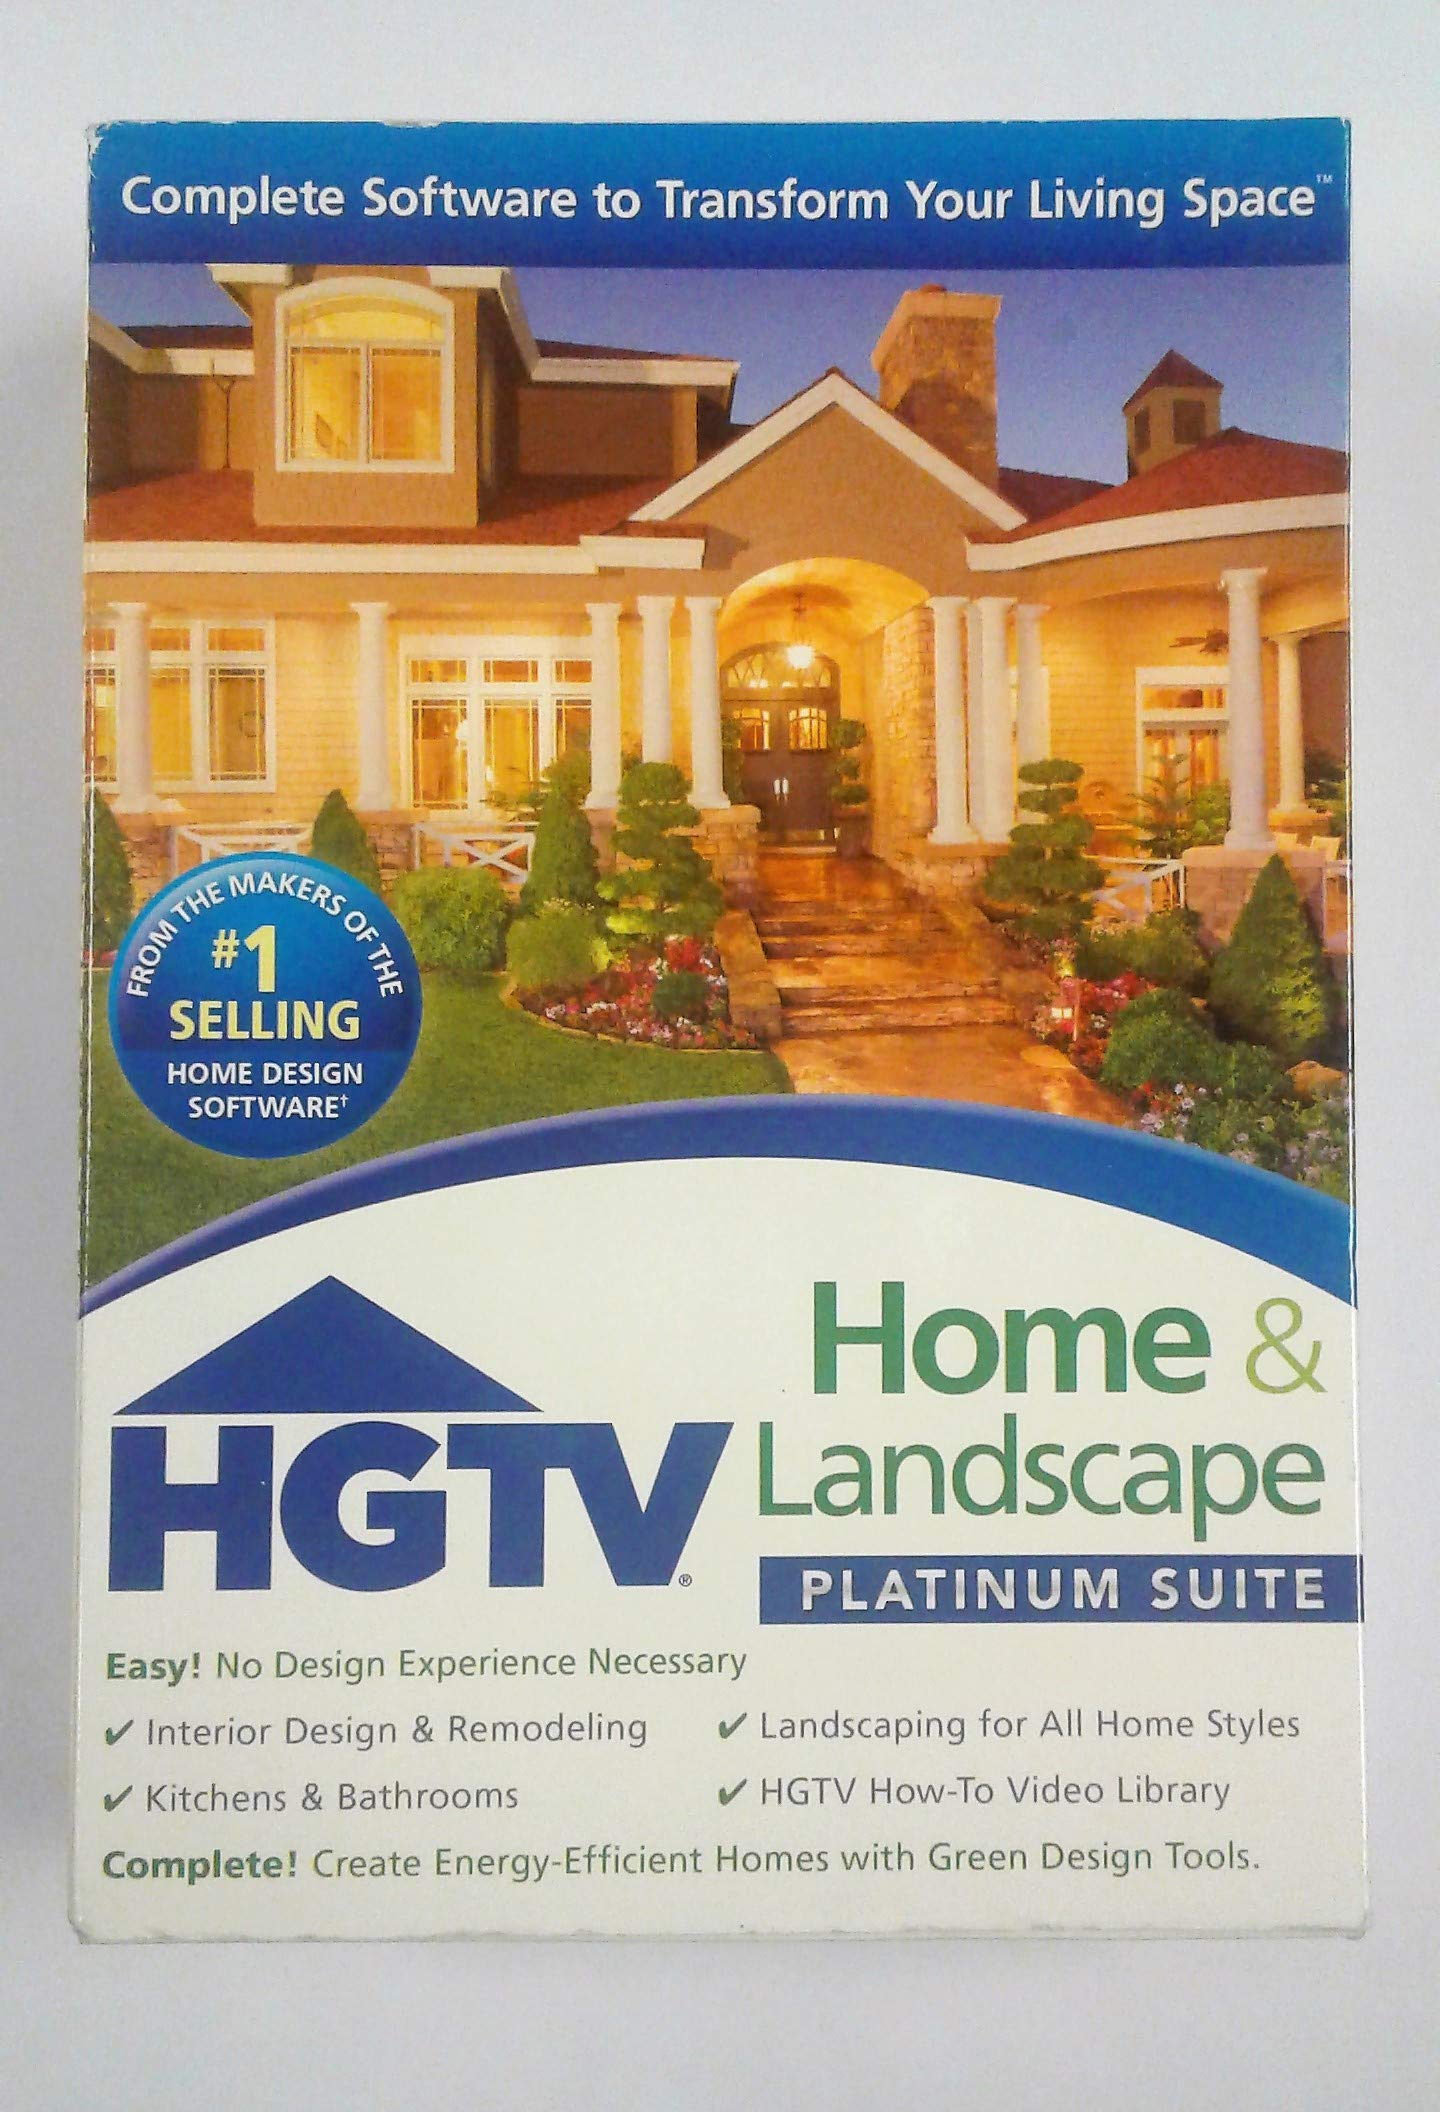 HGTV Home & Landscape Platinum Suite (42956) by Nova Development